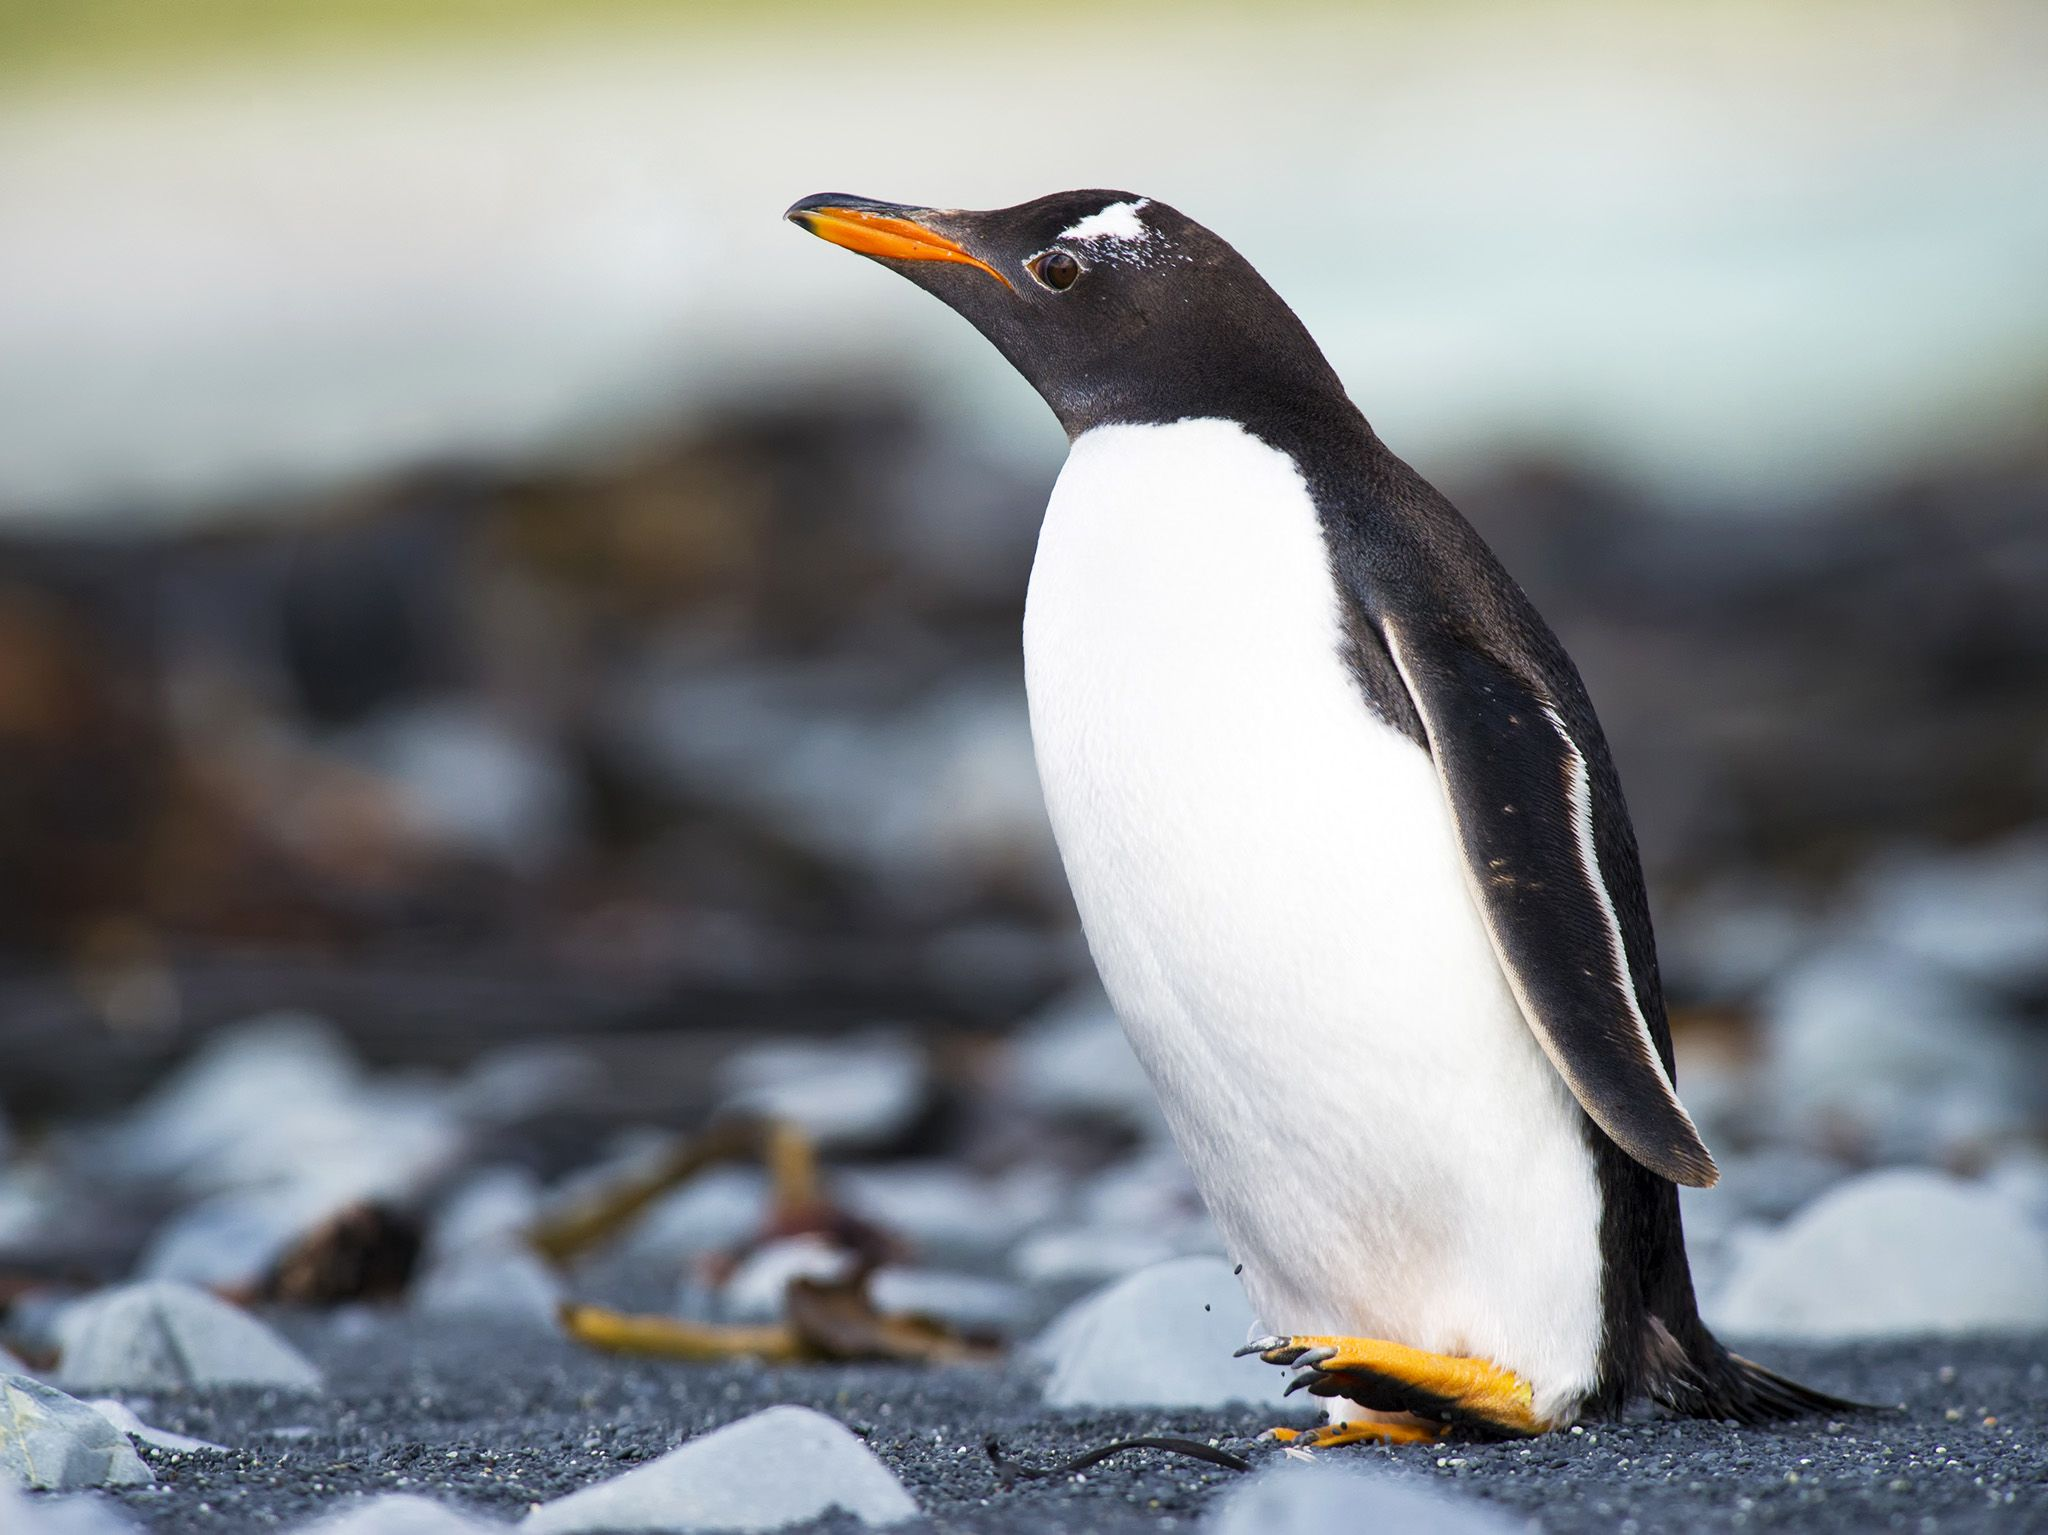 Macquarie Island, Australia:  Gentoo Penguin (Pygoscelis papua) walking on a rocky beach. This... [Photo of the day - April 2020]